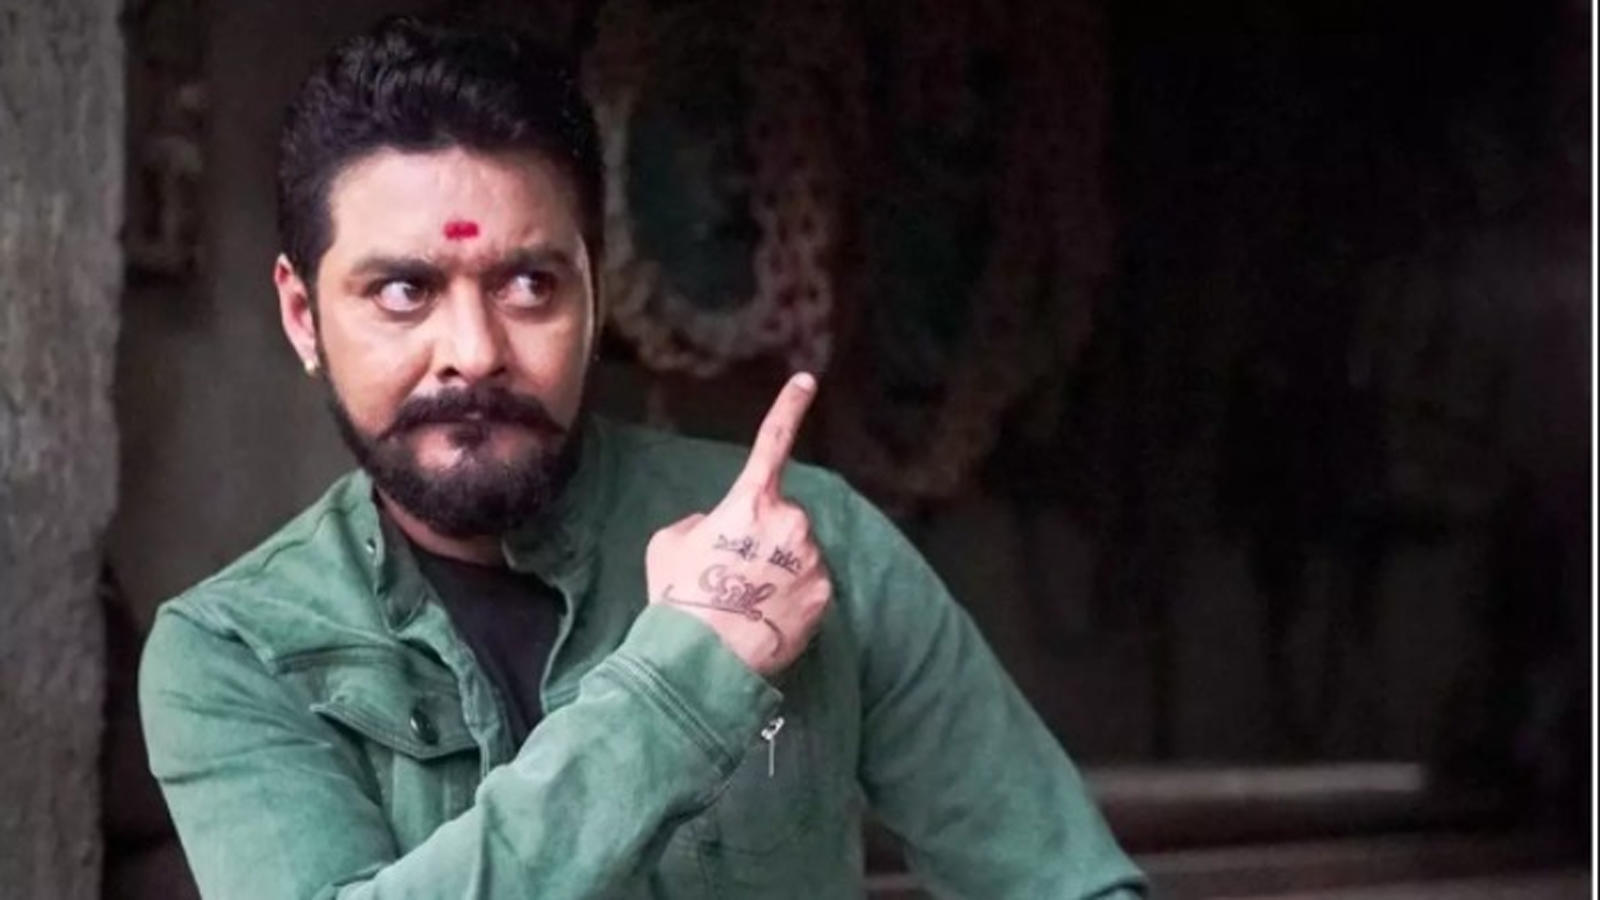 Instagram suspends account of Bigg Boss 13 fame Hindustani Bhau after Kavita Kaushik, and other celebs complain against him - Times of India